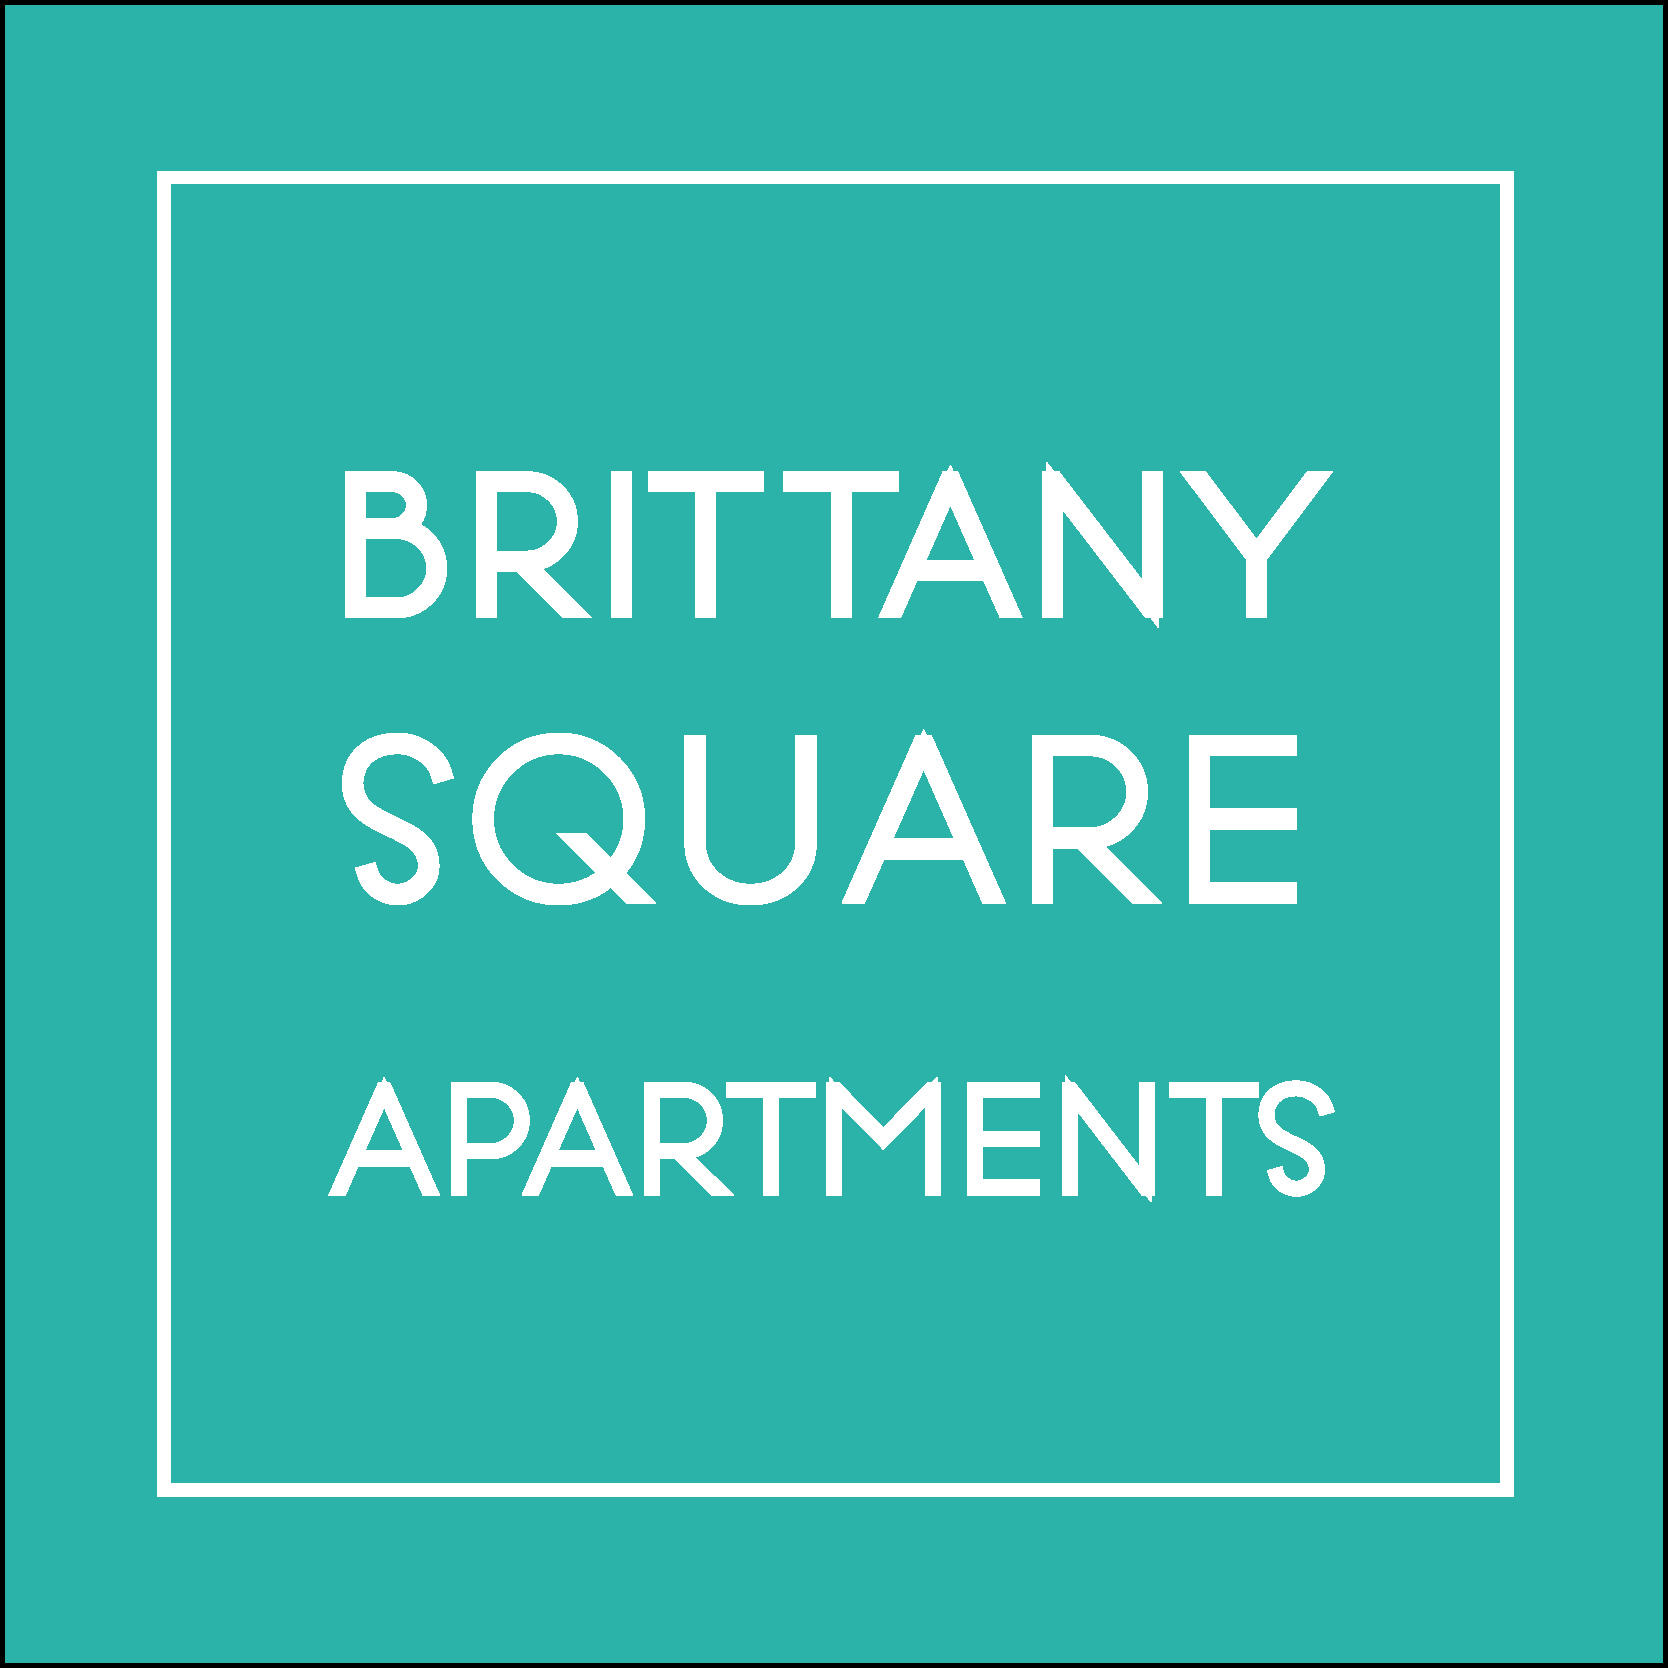 Brittany Square Apartments